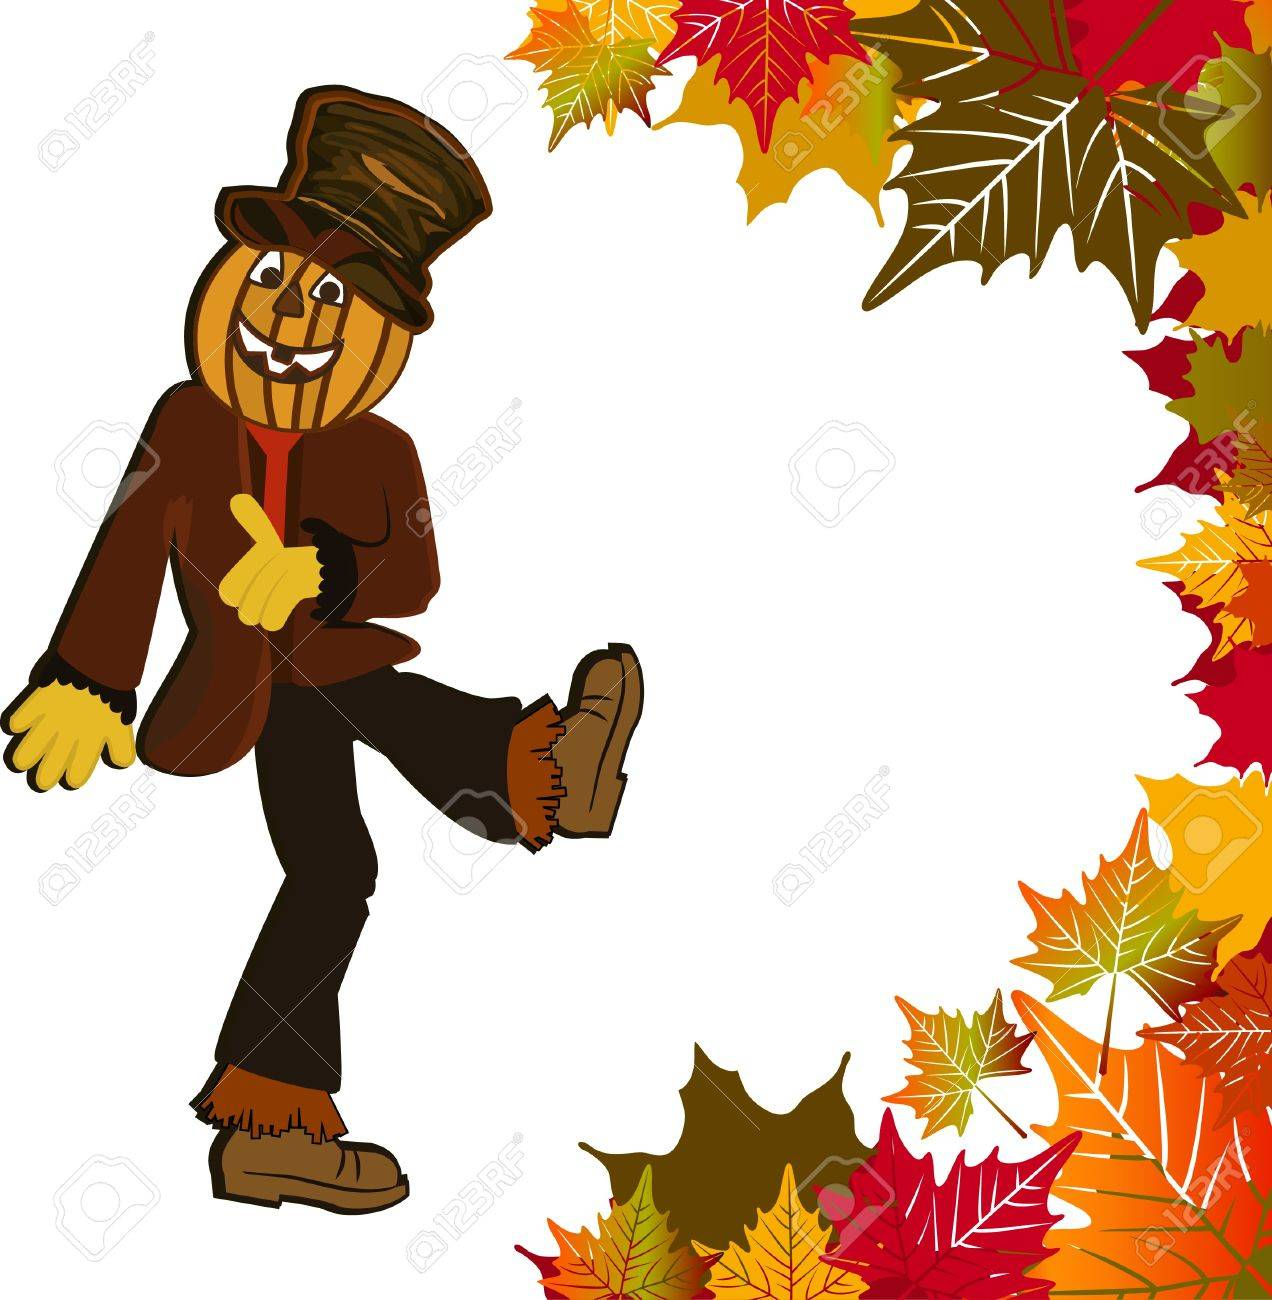 hight resolution of dancing pumpkin head scarecrow fall leaves stock vector 16185173